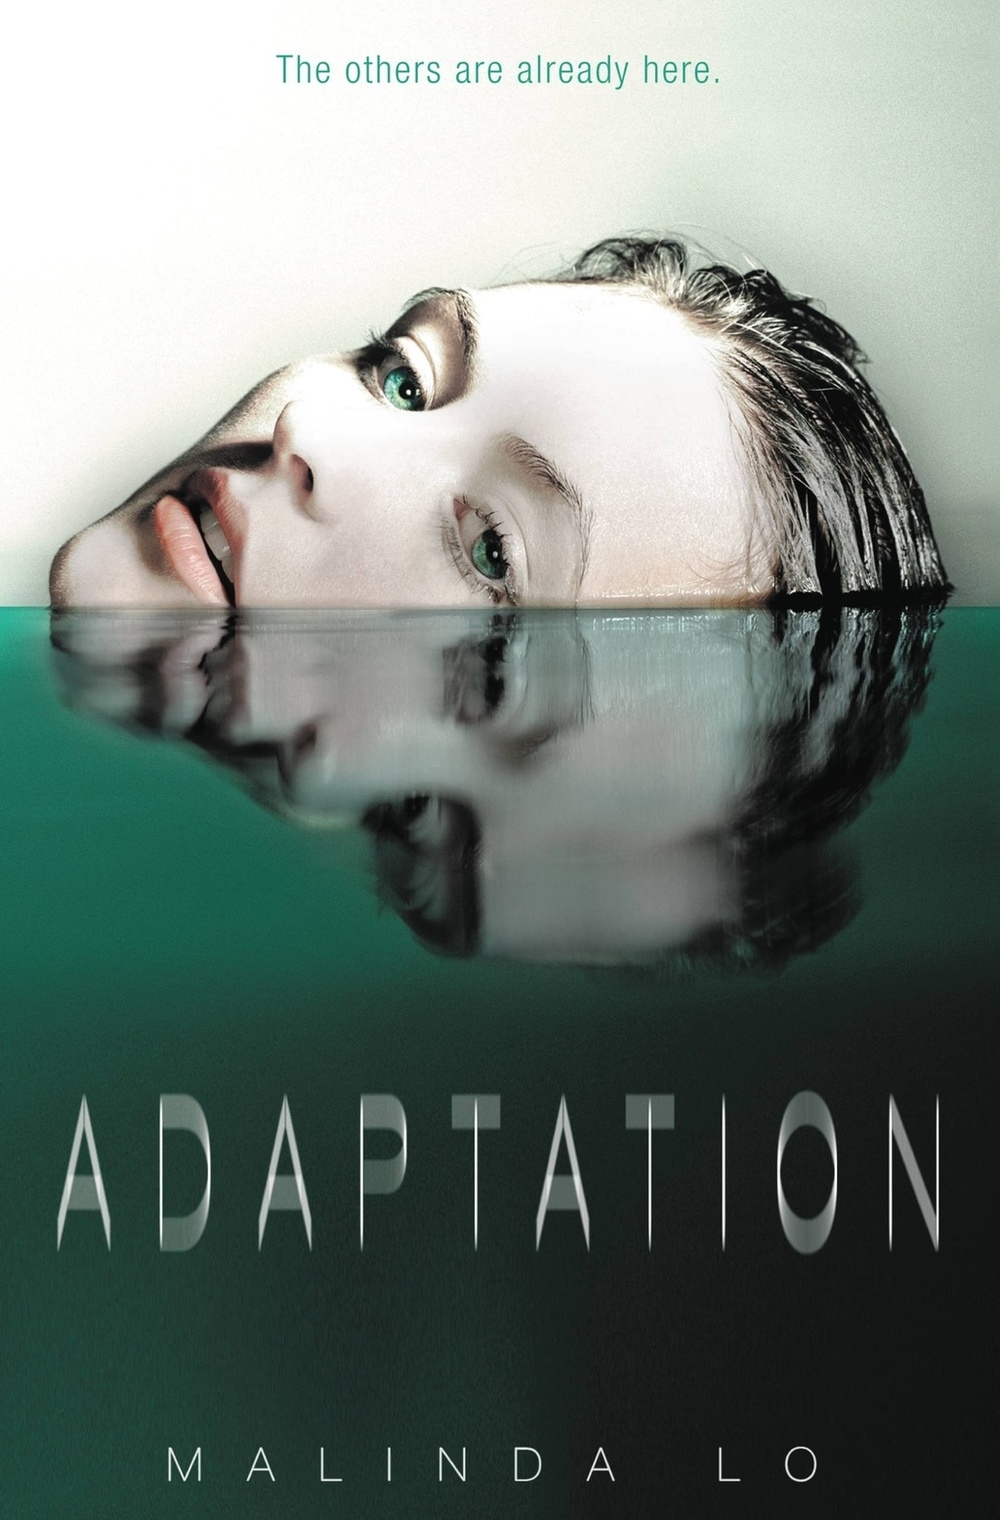 Adaptation, by Malinda Lo